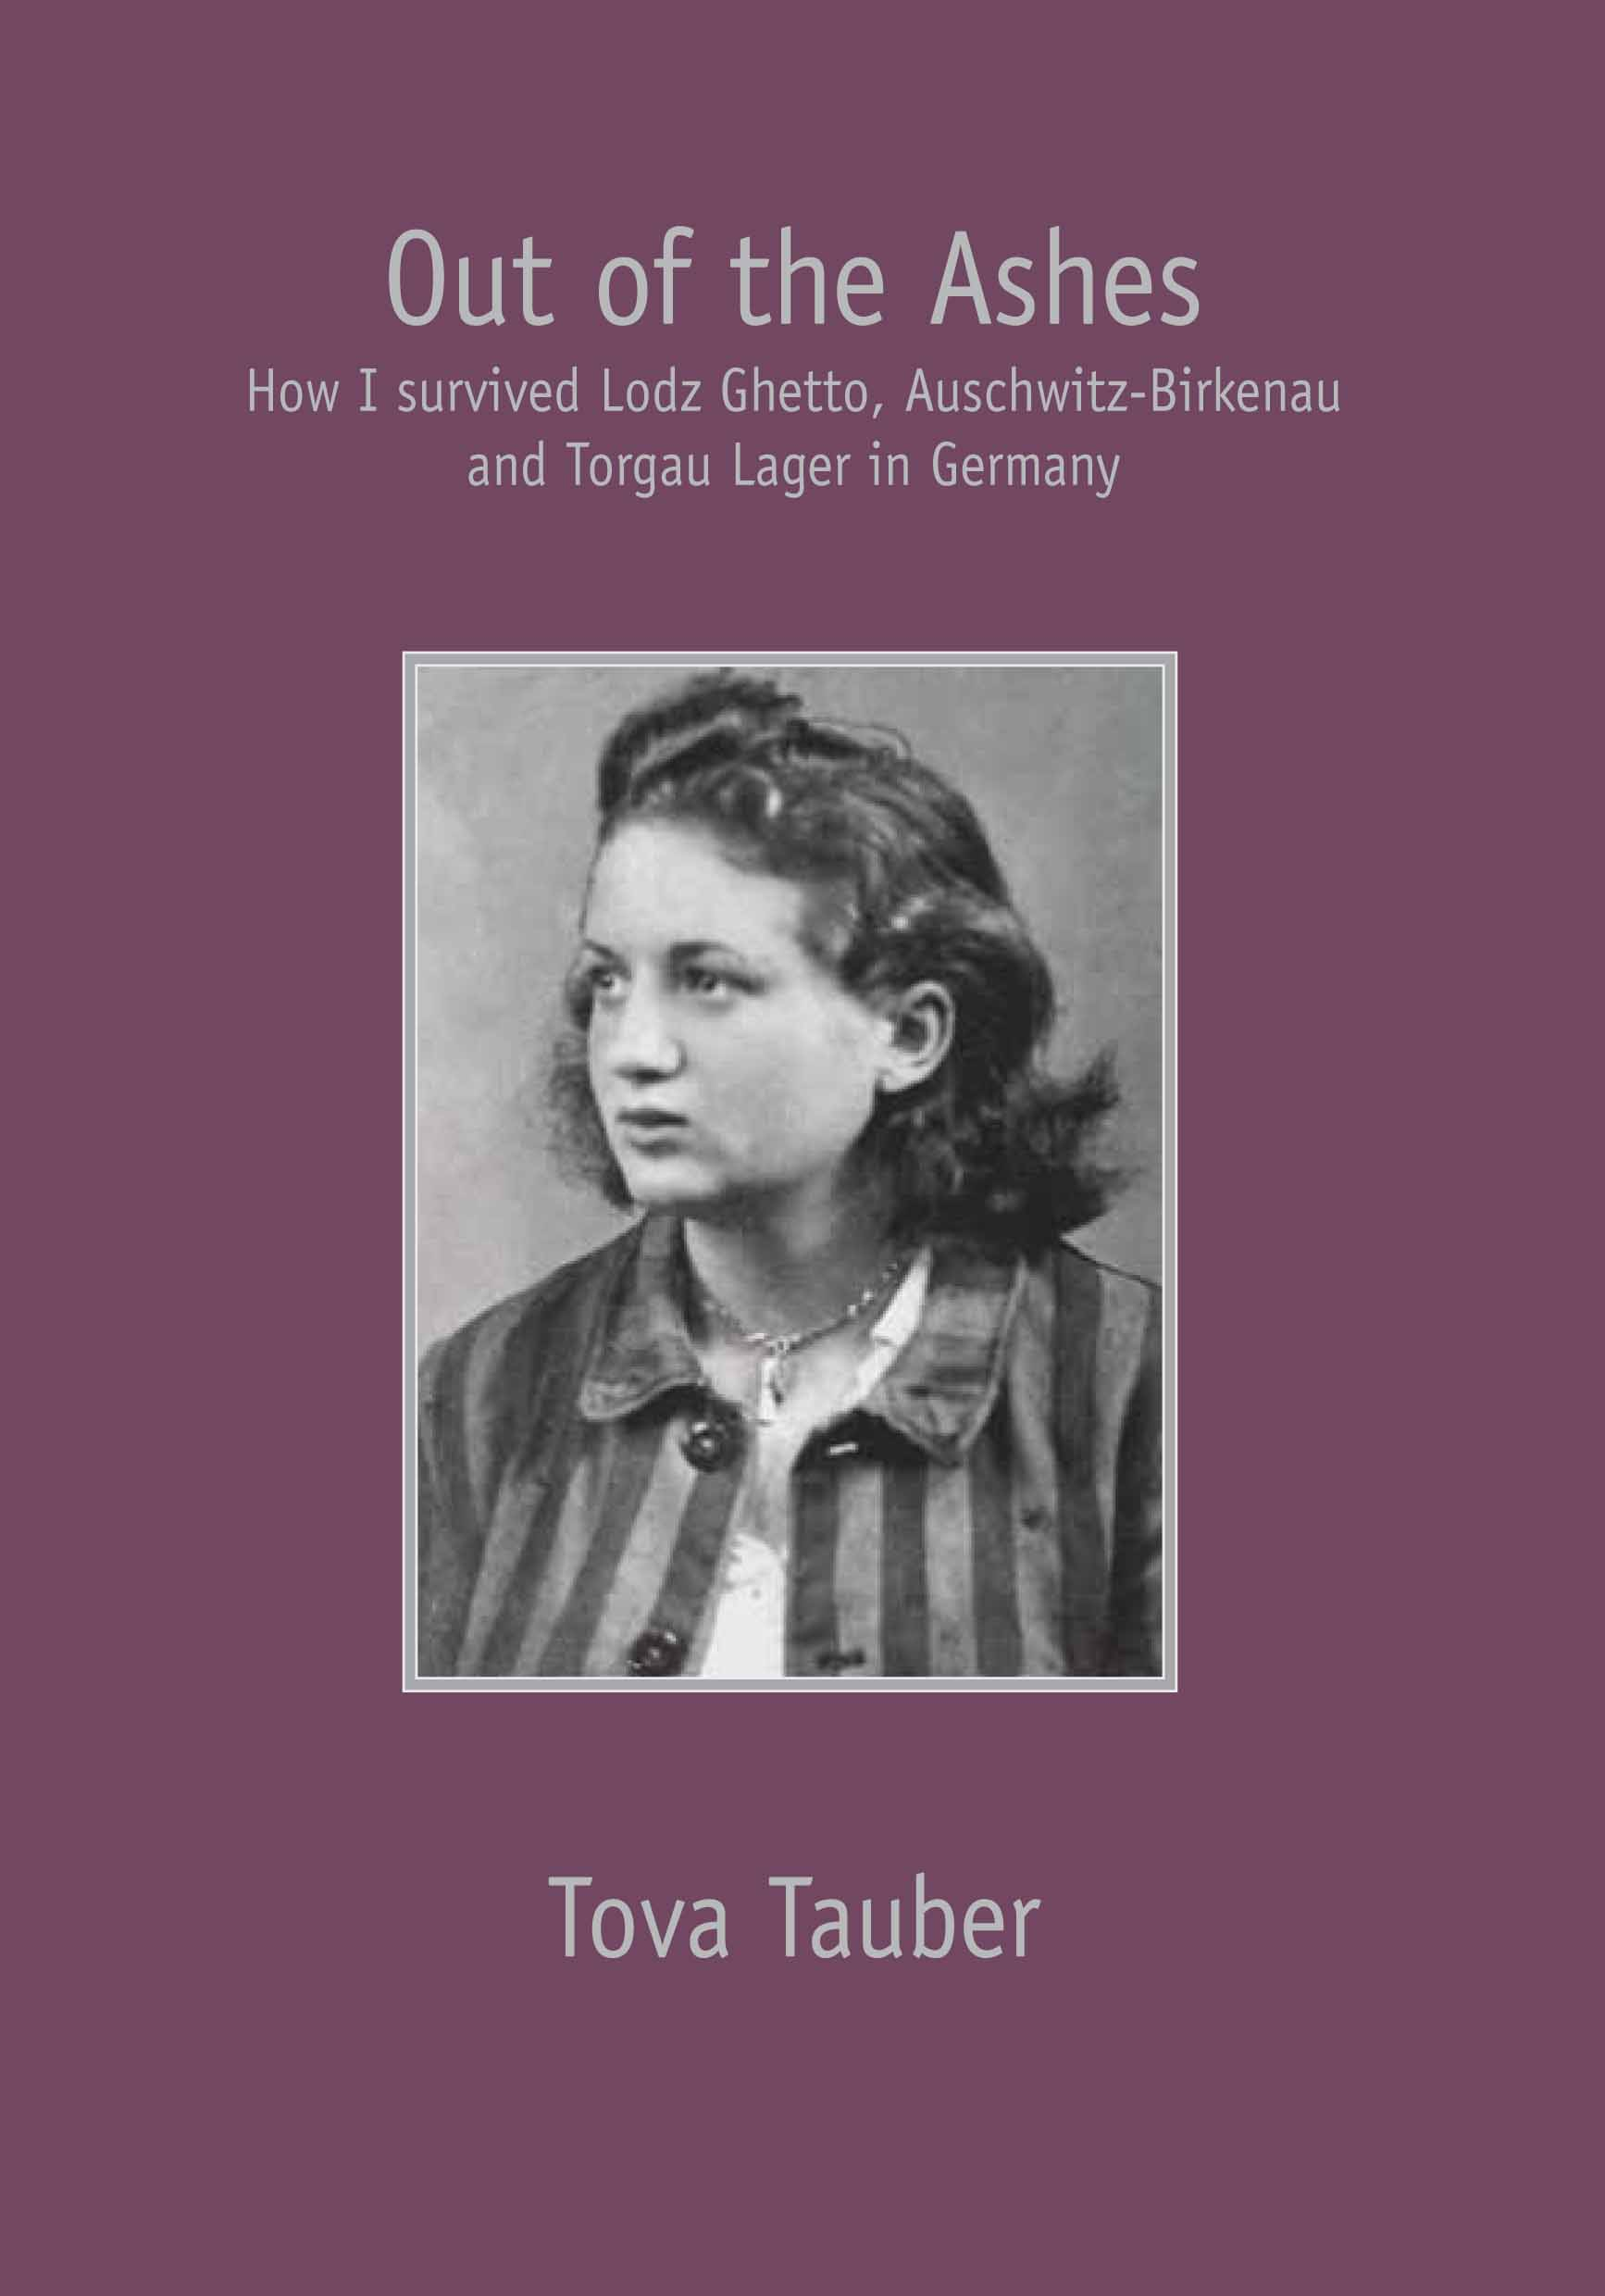 Tauber, Tova: Out of the Ashes